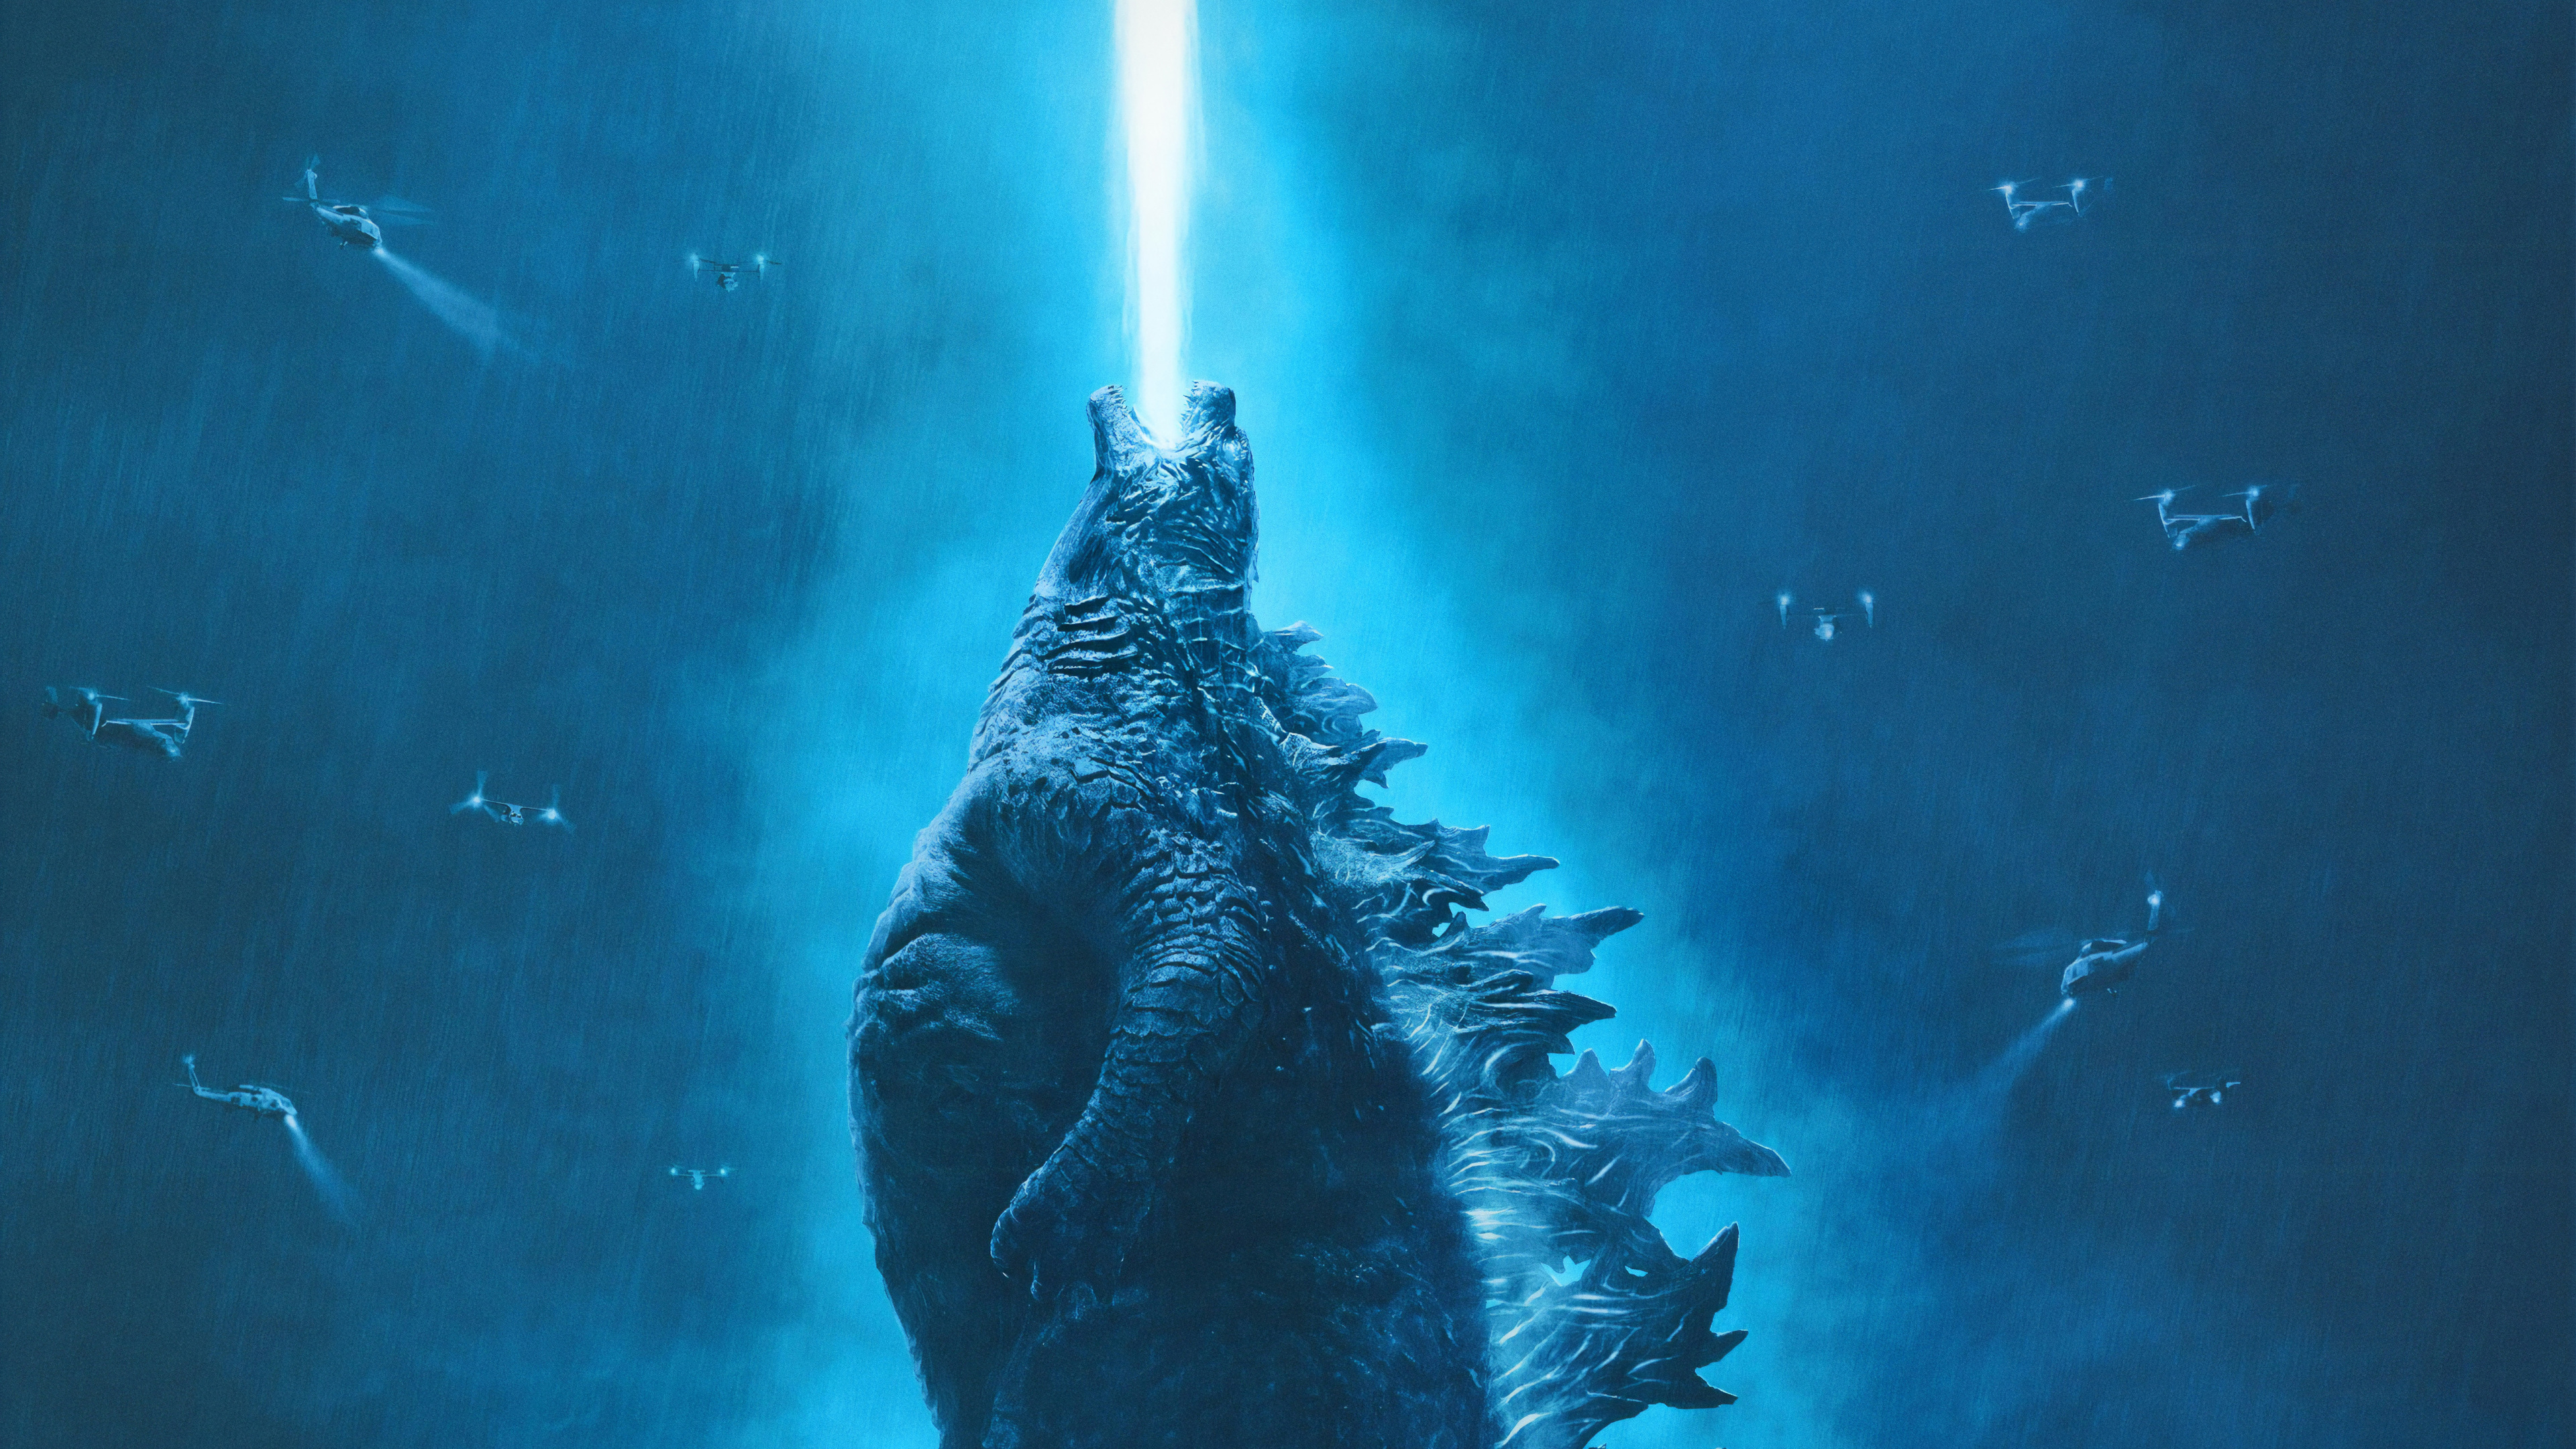 godzilla king of the monsters 4k 2019 1558219978 - Godzilla King Of The Monsters 4k 2019 - poster wallpapers, movies wallpapers, hd-wallpapers, godzilla king of the monsters wallpapers, 4k-wallpapers, 2019 movies wallpapers